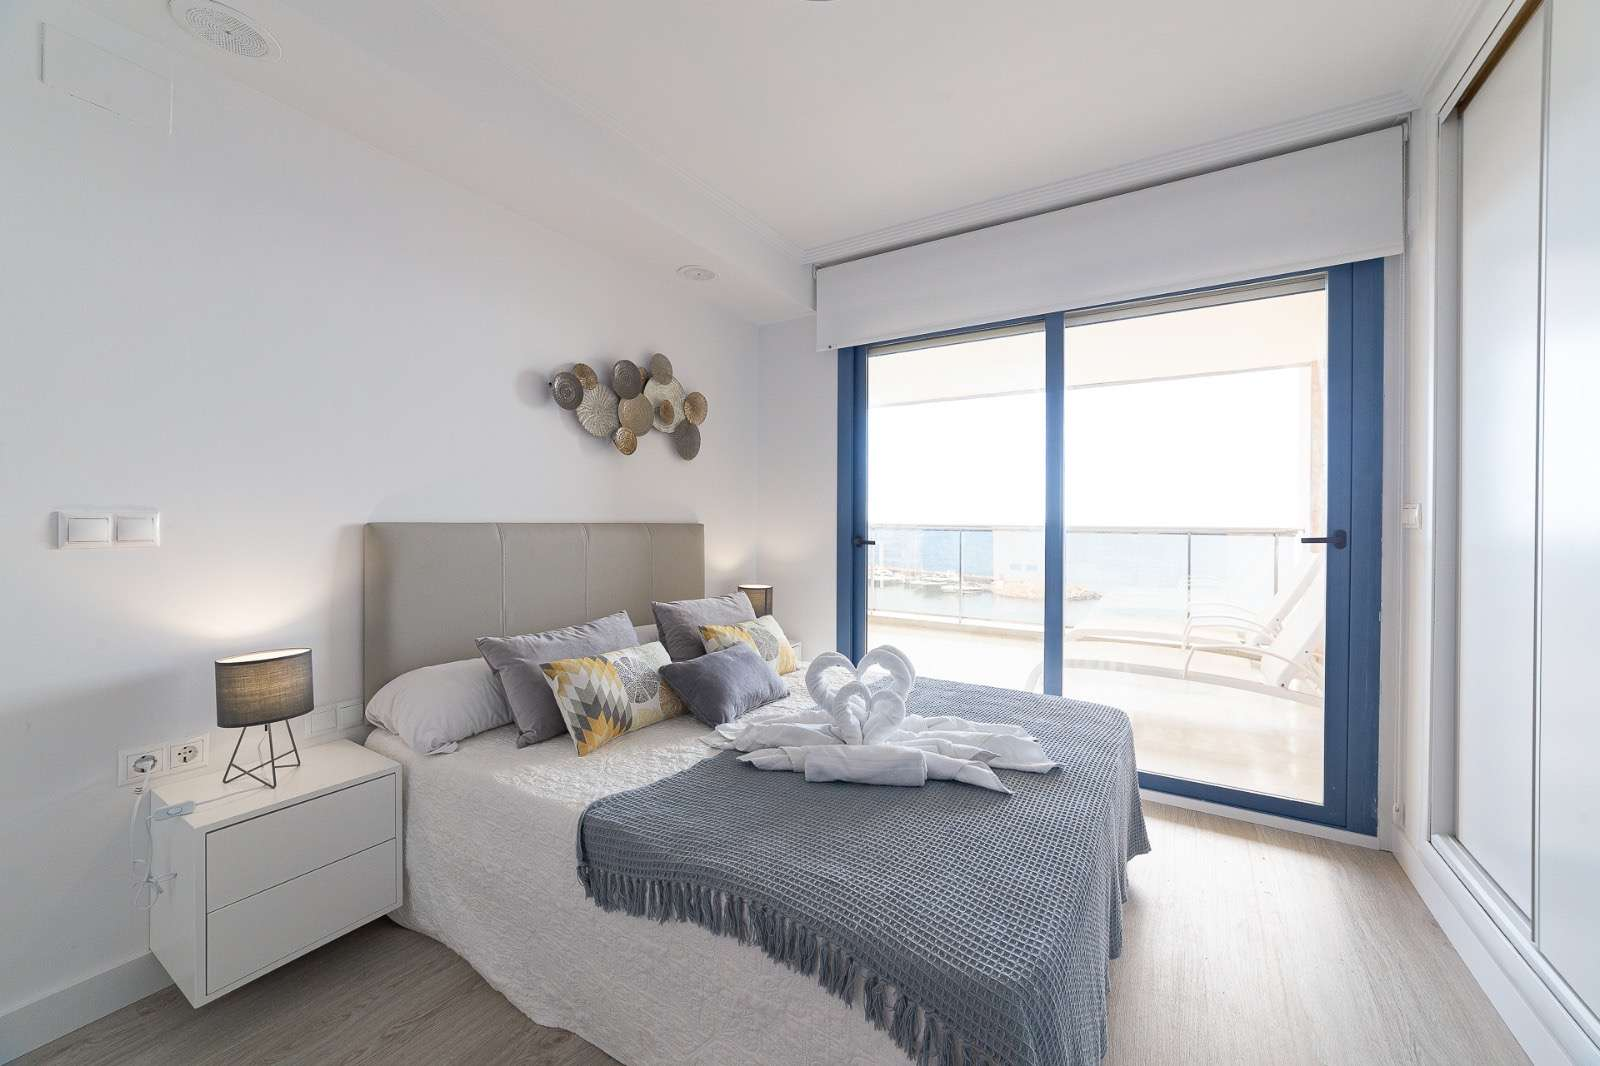 Flat with a sea view in Altea